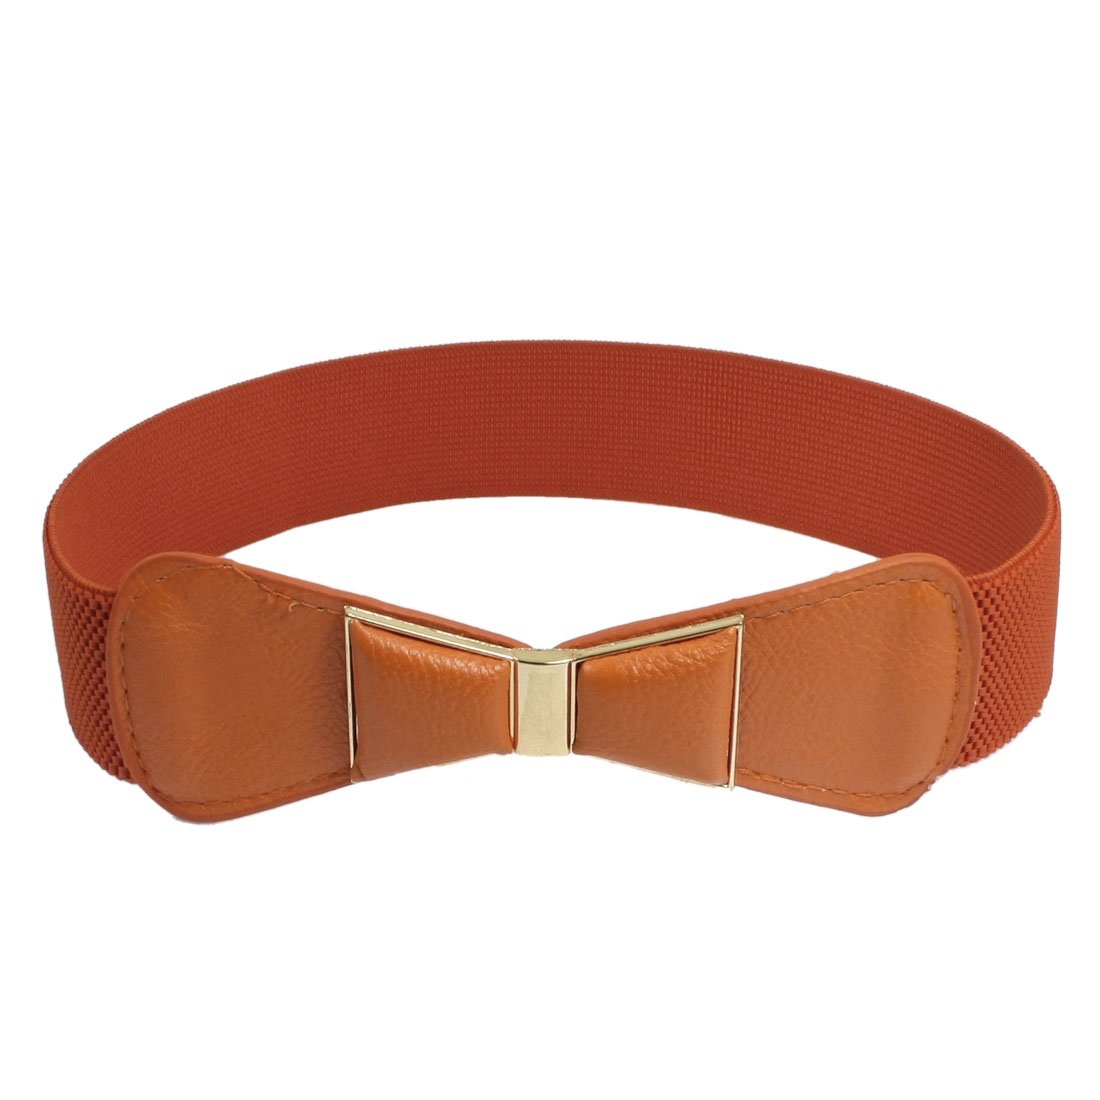 Gold Tone Metal Interlocking Buckle Orange Stretchy Waistband Belt for Ladies